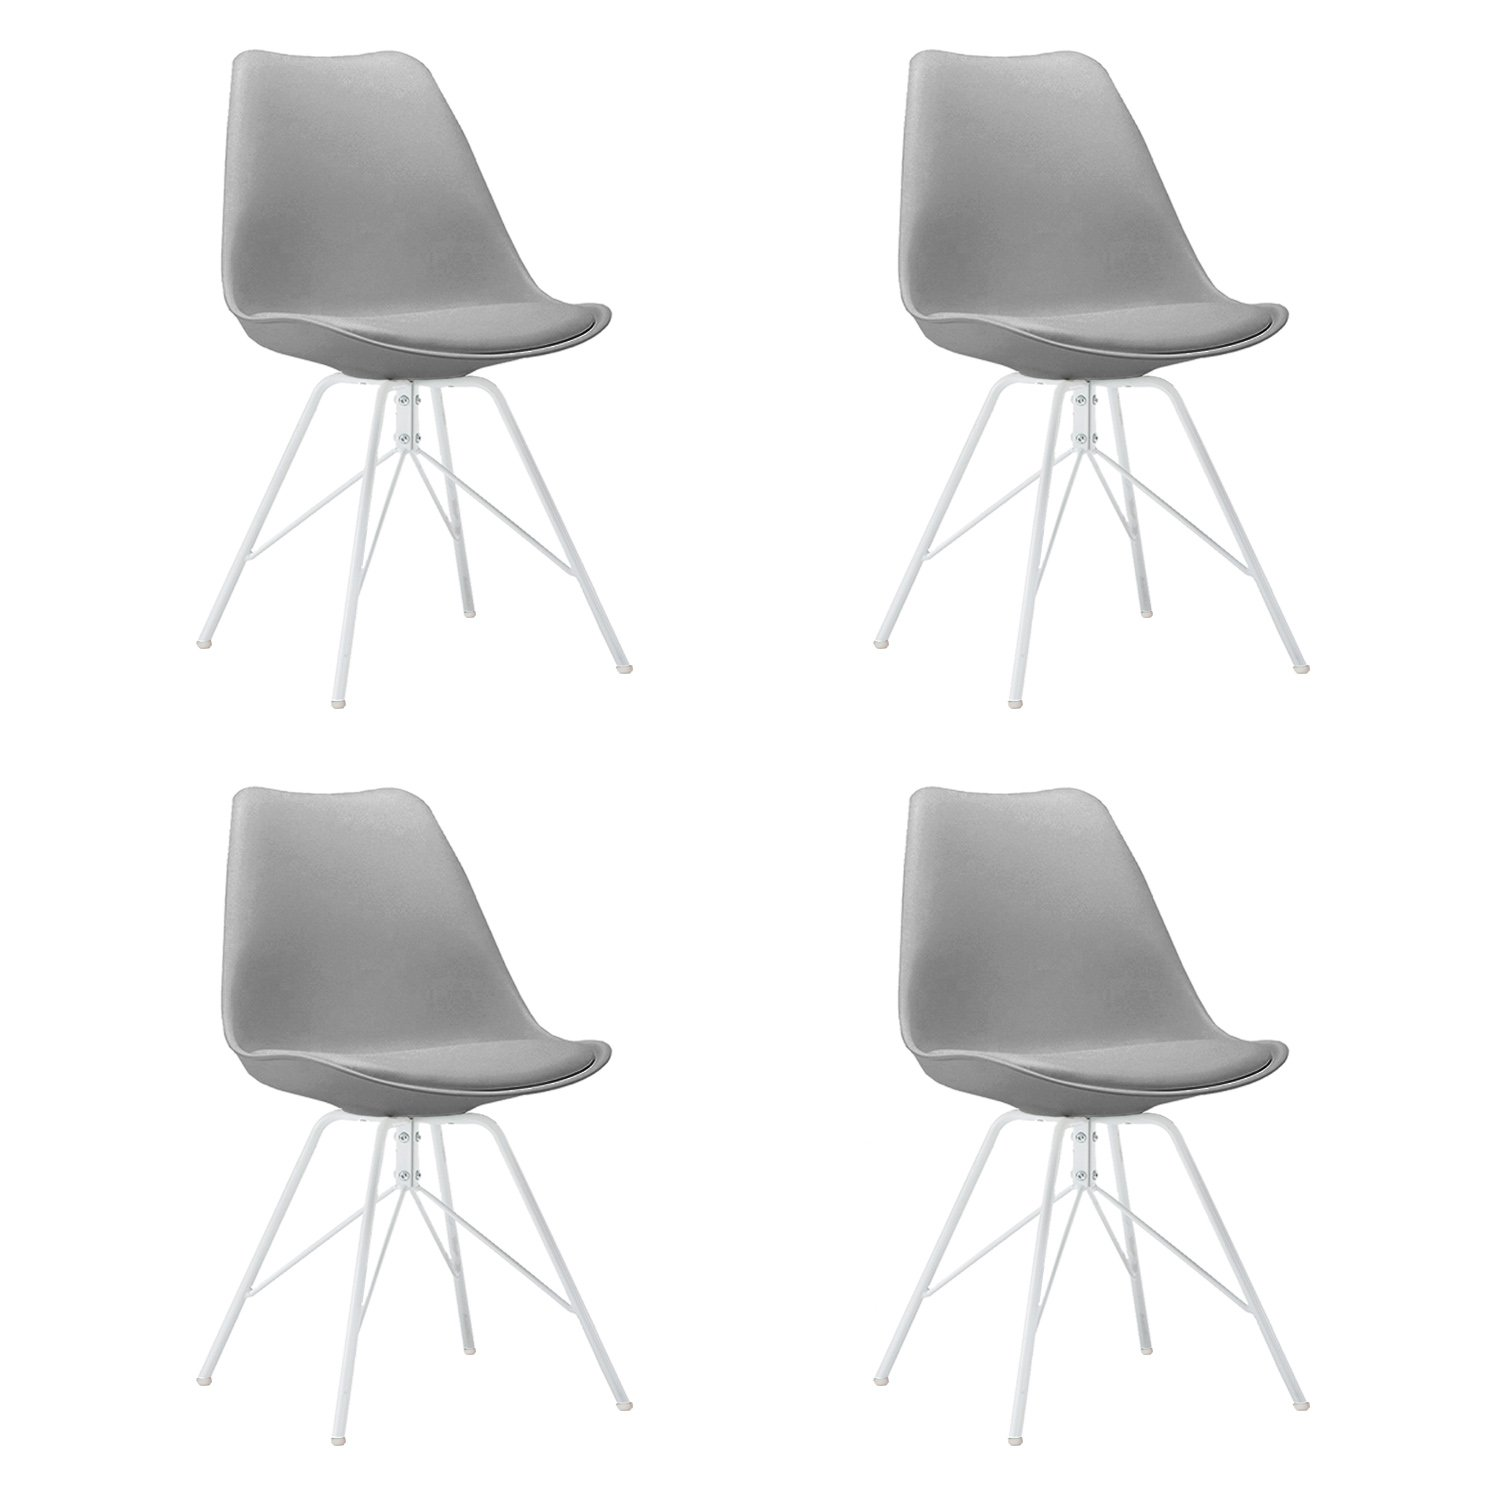 Design Furniture Collection DFC Eames Style Upholstered Dining Chair Set of 4, Grey Modern Kitchen Dining Room Side Chair with Cushion Seat Metal Leg